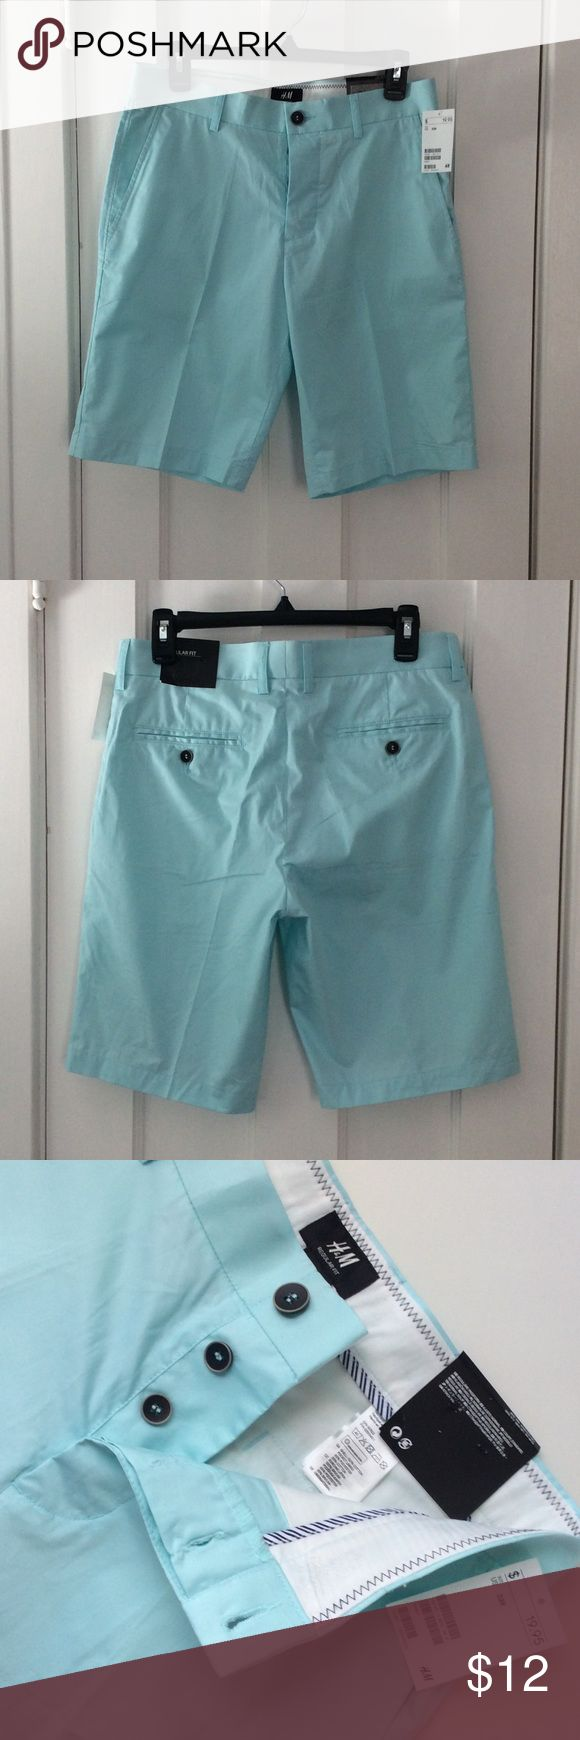 H&M Men's Chino Shorts pastel green. Brand NEW!🕶 Brand new! Light weight chino shorts. Pastel mint green. Really sharp! 10 inch inseam. 32 regular. Great compliment to your summer wardrobe! ☀️ H & M Shorts Flat Front